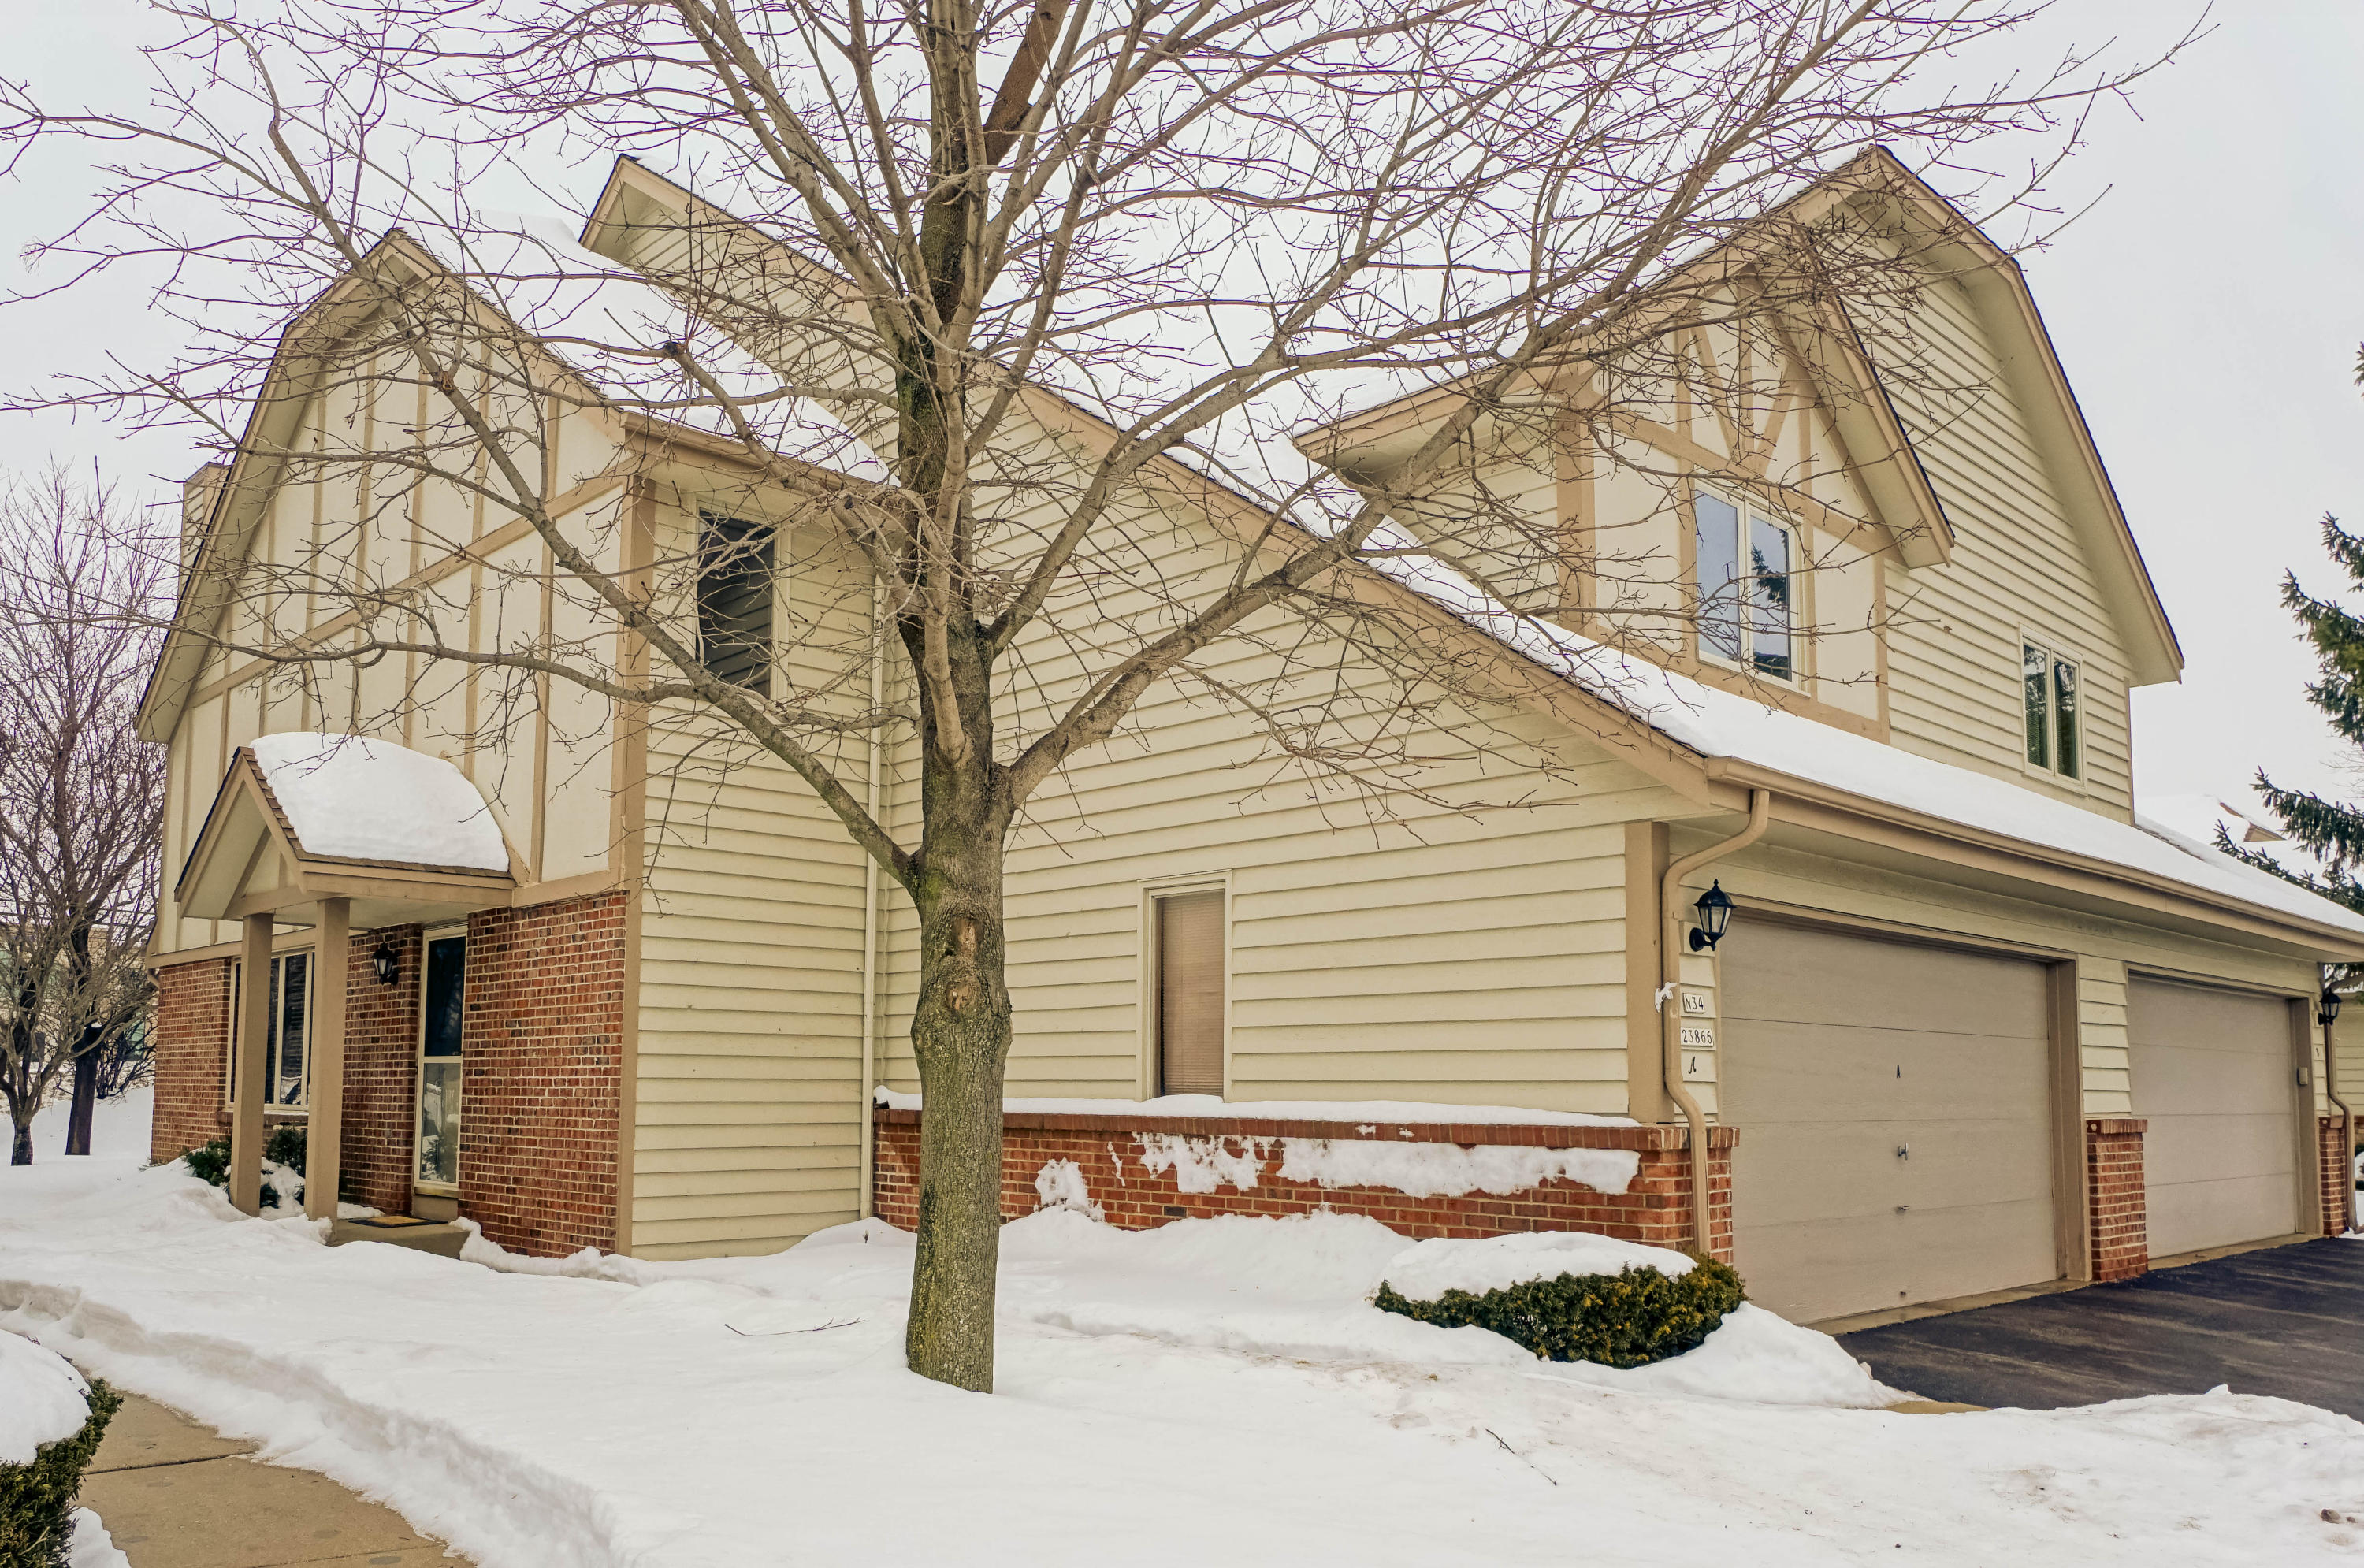 N34W23866 Grace Ave, Pewaukee, Wisconsin 53072, 3 Bedrooms Bedrooms, 6 Rooms Rooms,2 BathroomsBathrooms,Condominiums,For Sale,Grace Ave,1,1621603